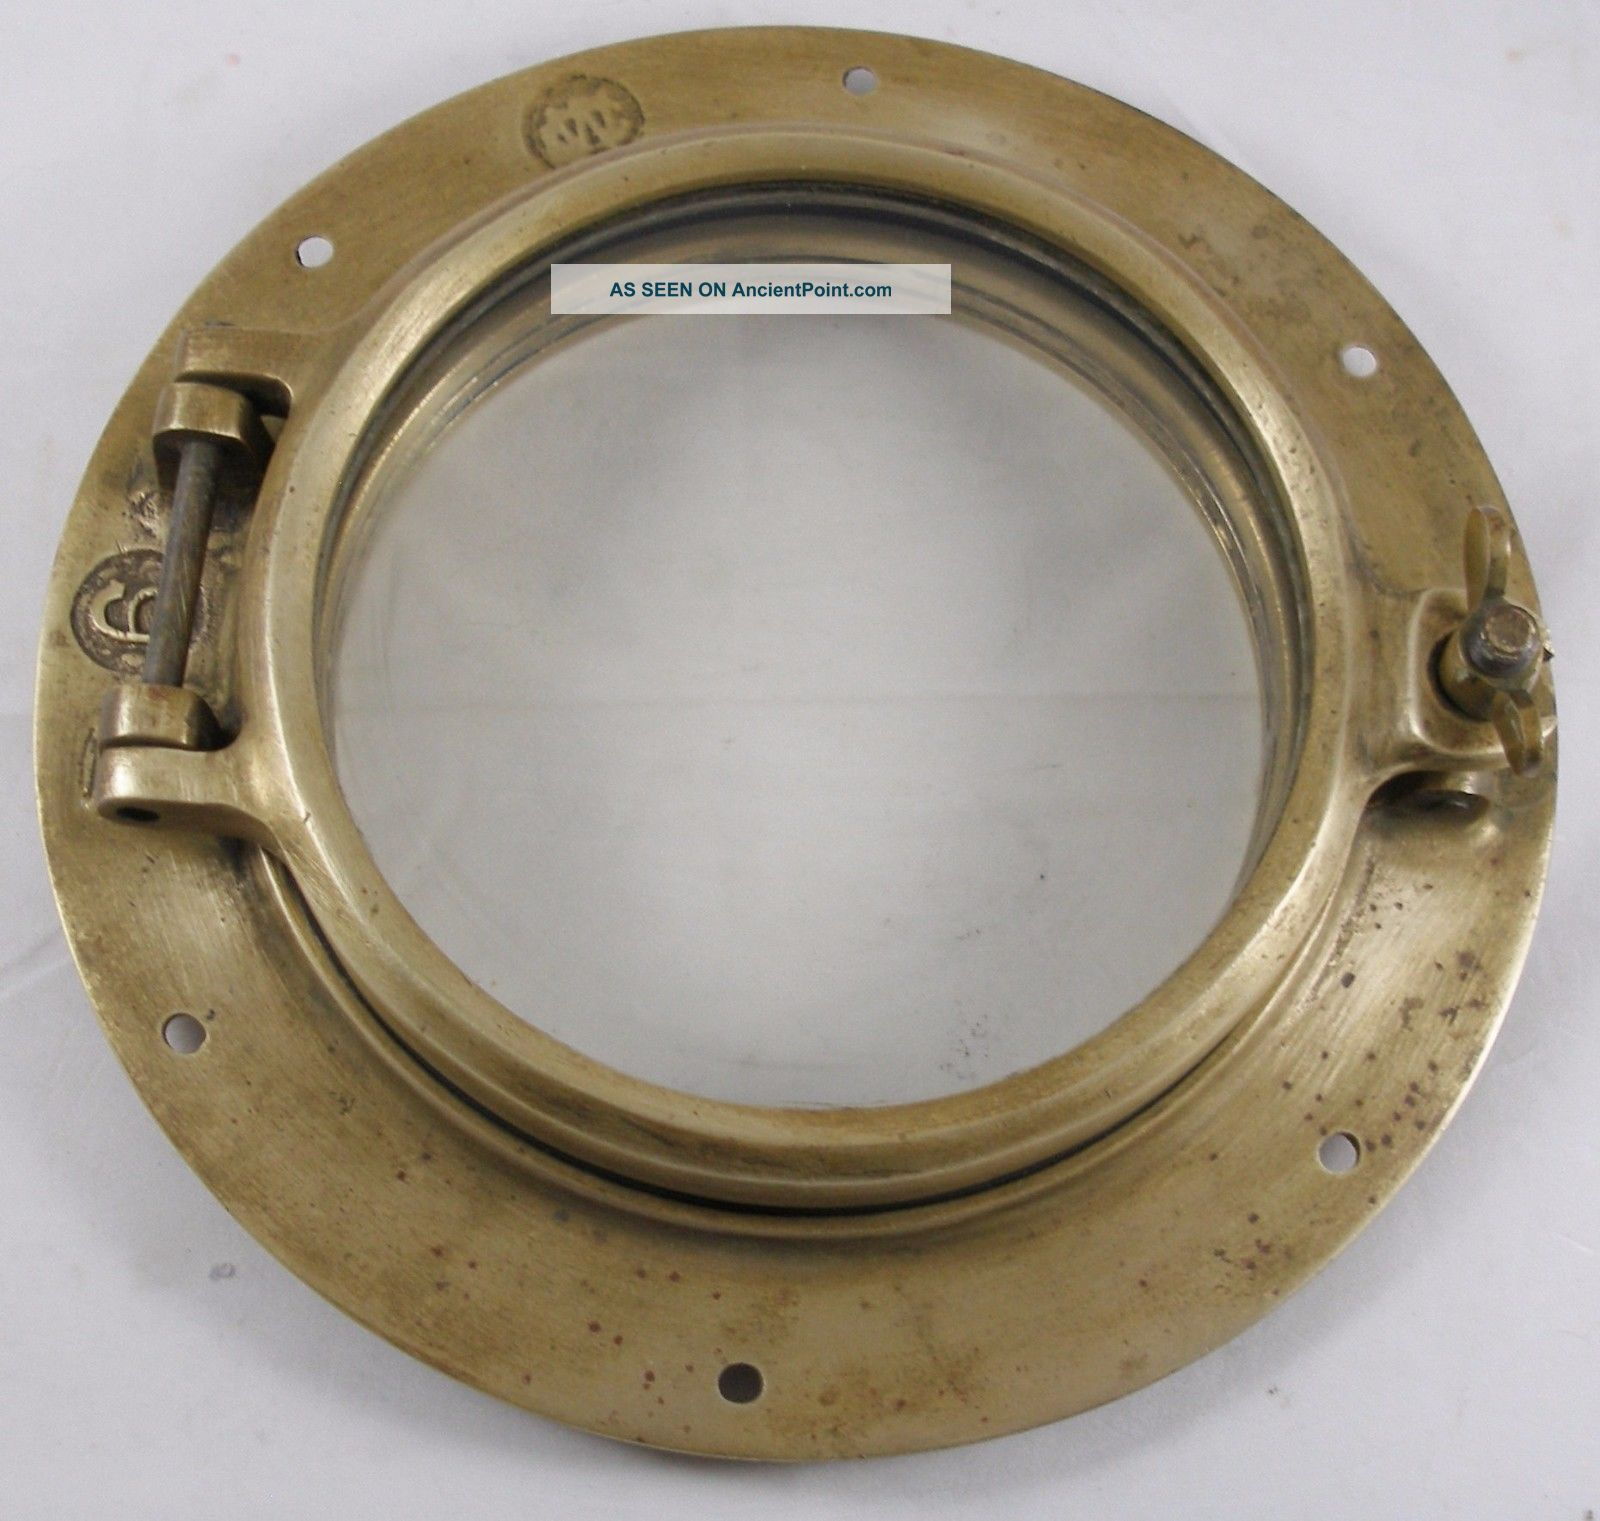 Antique Bronze Porthole,  Salvaged Porthole Nautical Wc 6 Porthole Portholes photo